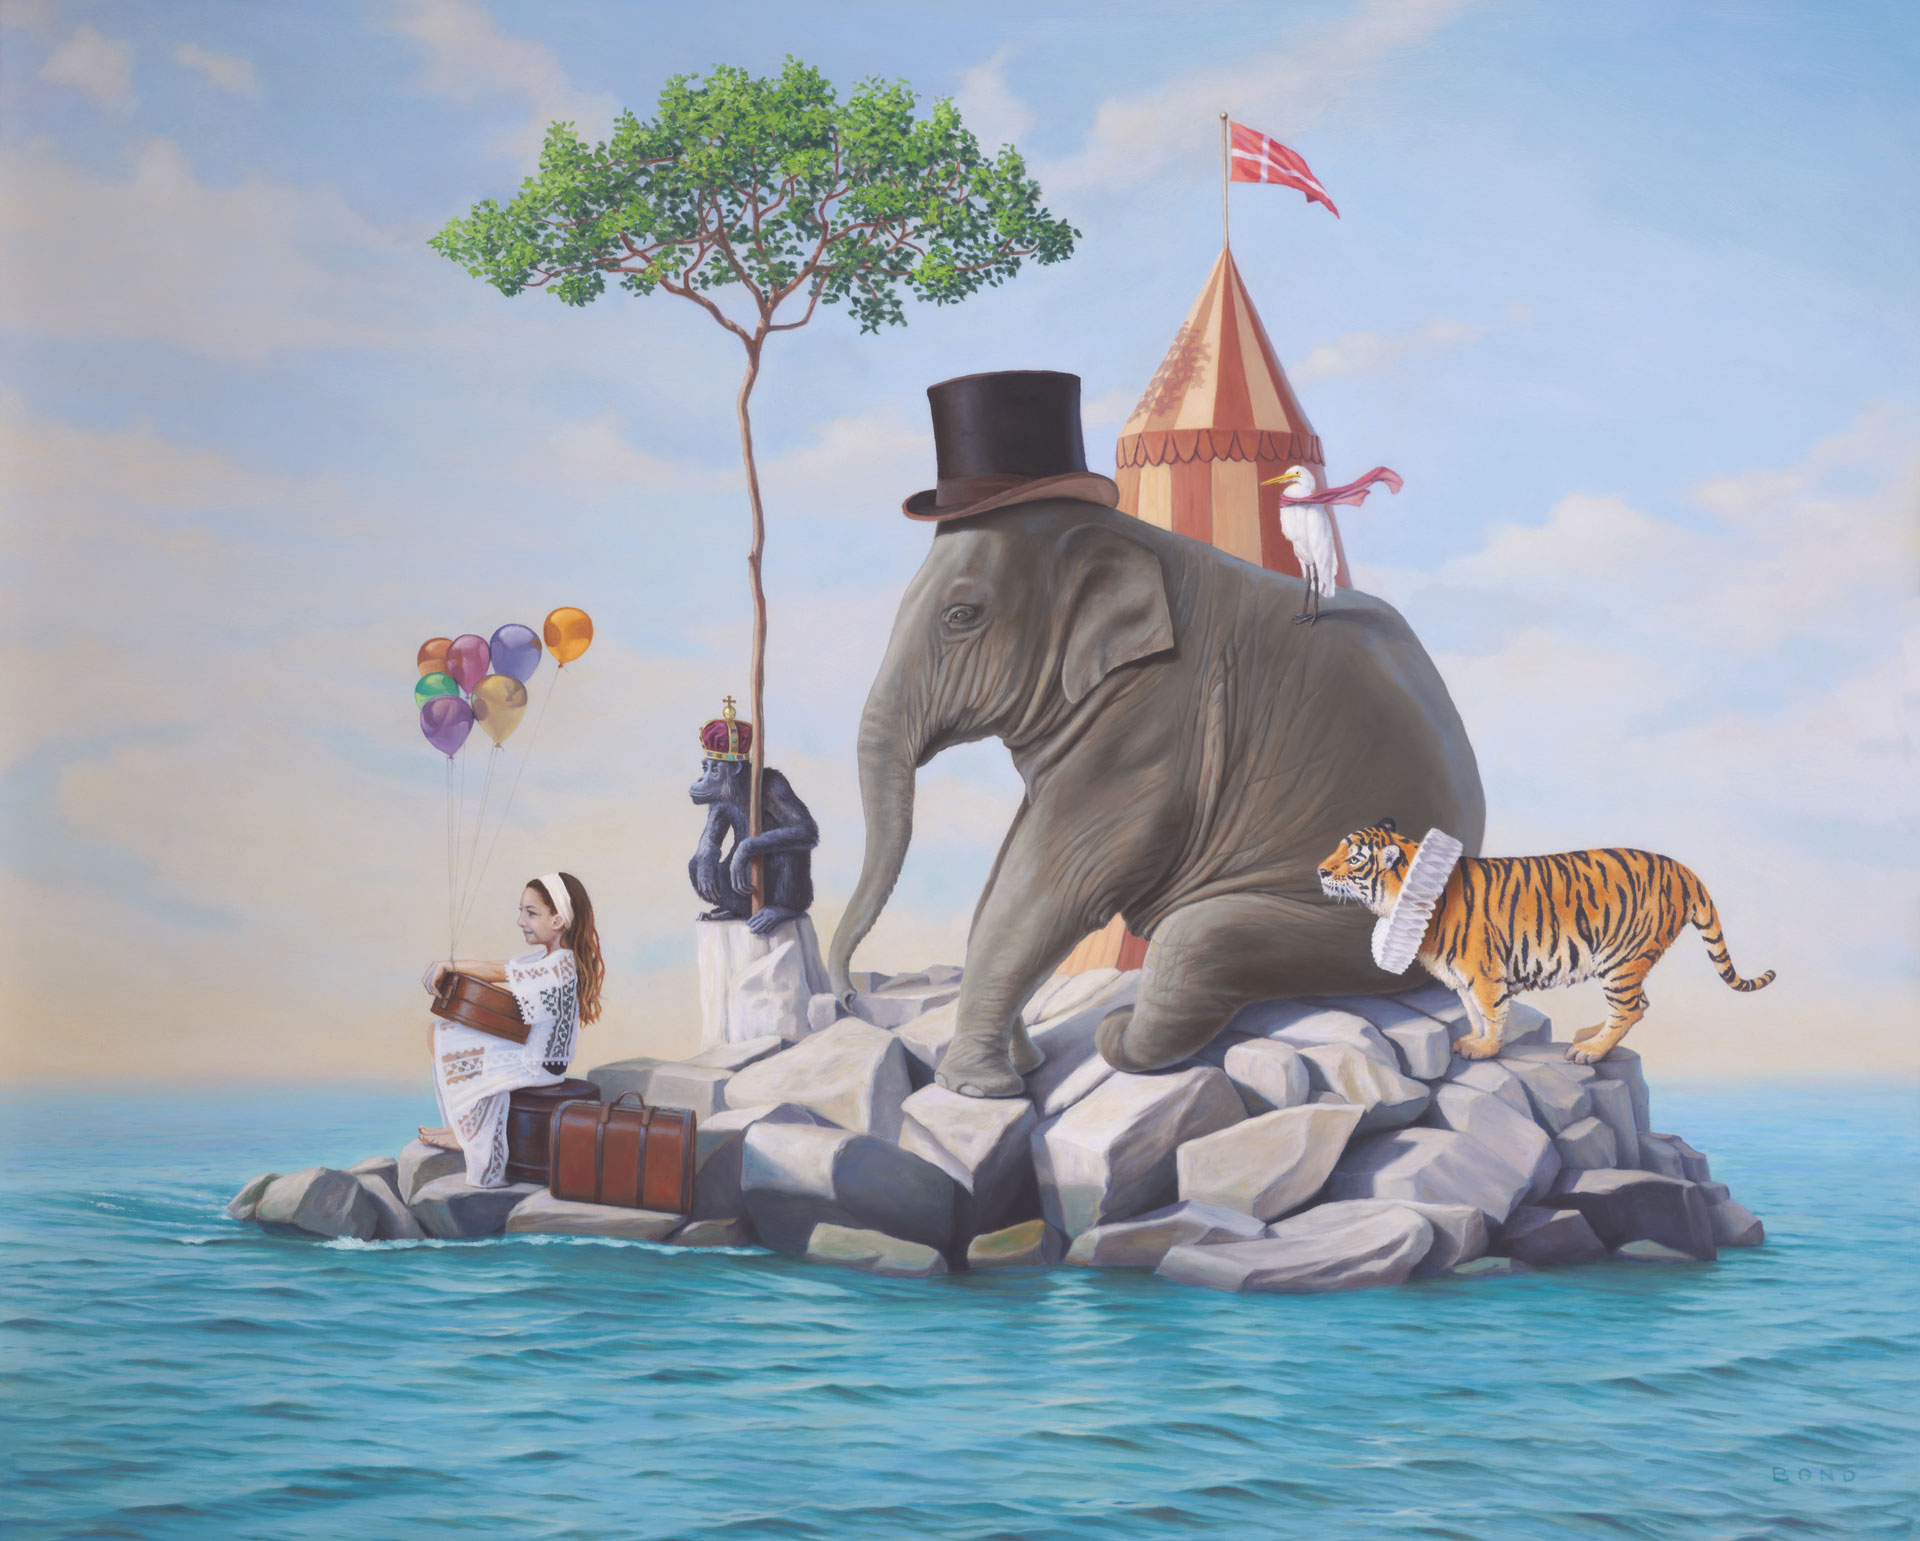 McKena's Bittersweet Departure from the Island of Happiness, painting of a little girl with circus animals, painting of circus floating on an island, painting with girl on rocks, art with monkey chimpanzee, elephant, art with crane ibis heron bird, tiger, art with circus tent, painting about love and  play, art about imagination, painting with luggage, painting with suitcase, art with ocean, sea, water, island, sky, painting about departure, painting with child, art about lost childhood, painting about growing up, painting meaning happy, joy, positive,soulful uplifting inspirational art, soul stirring illusion art, romantic art,  surrealism, surreal art, dreamlike imagery, fanciful art, fantasy art, dreamscape visual, metaphysical art, spiritual painting, metaphysical painting, spiritual art, whimsical art, whimsy art, dream art, fantastic realism art, limited edition giclee, signed art print, fine art reproduction, original magic realism oil painting by Paul Bond